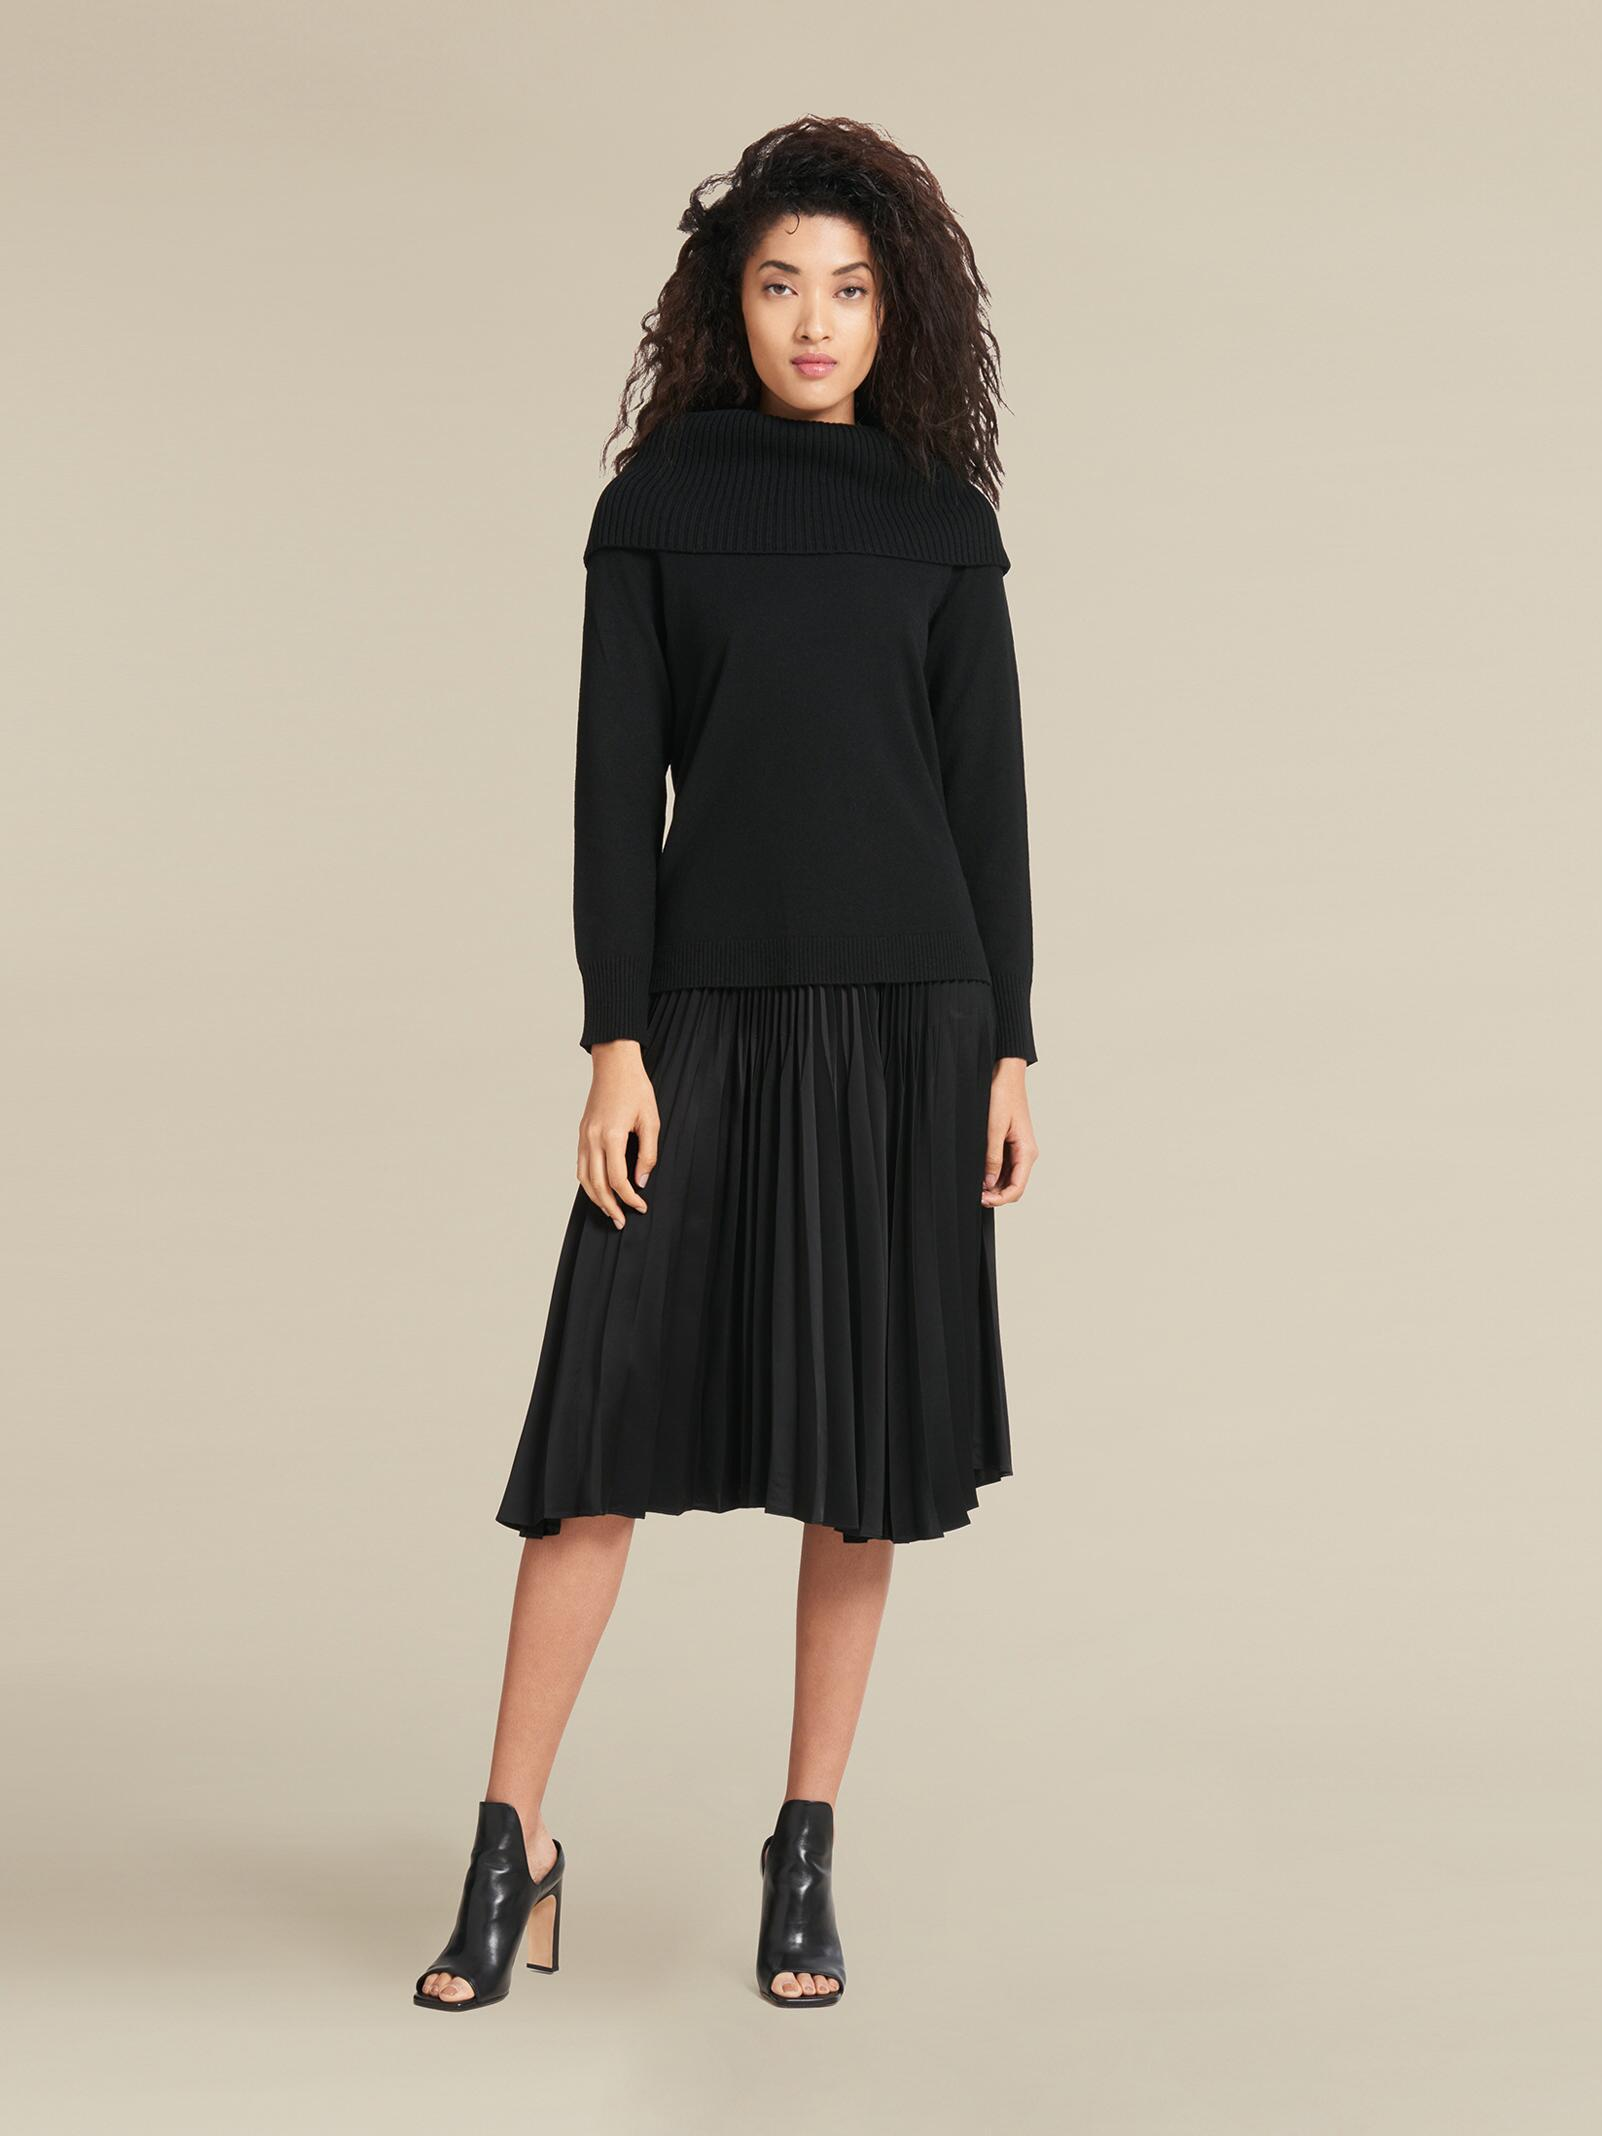 Wool Cashmere Turtleneck DKNY Get Authentic Buy Online New 2018 Newest Cheap Online Hurry Up YXo1k